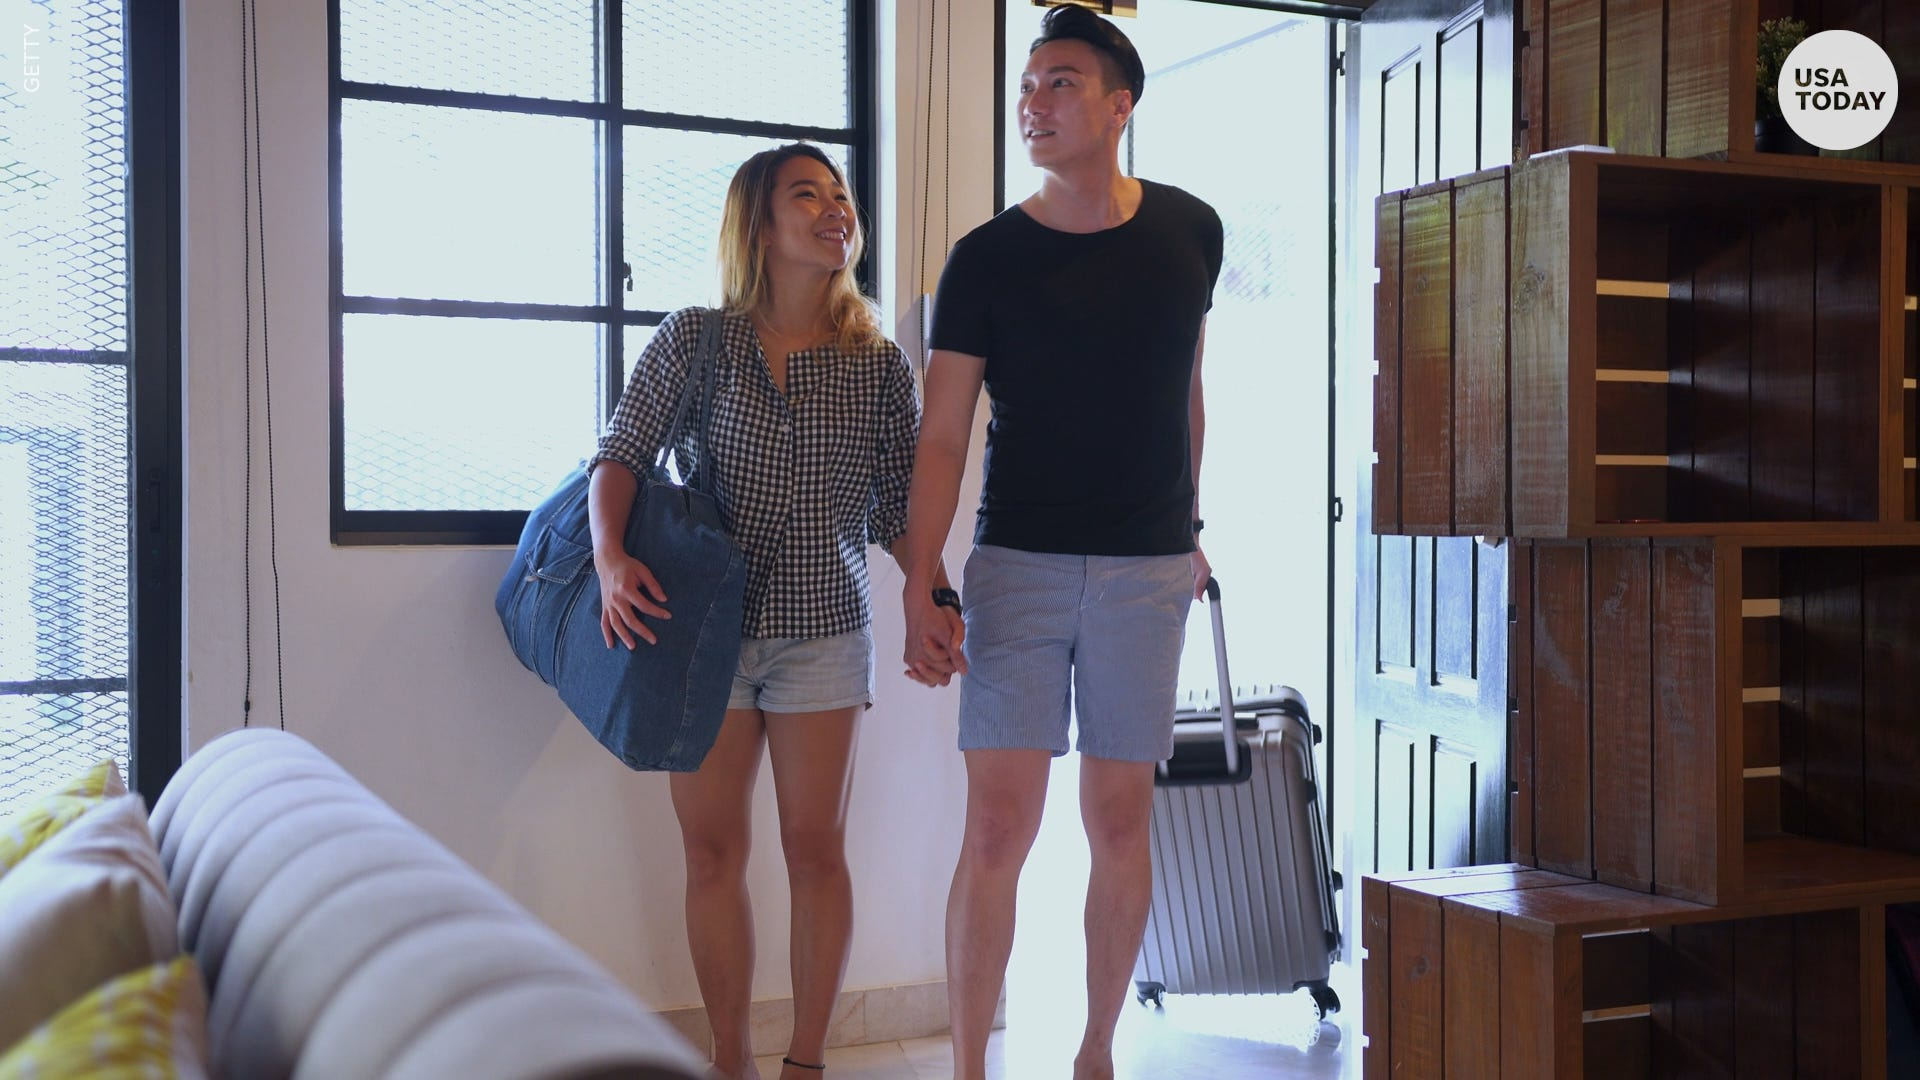 Here are 3 tips to avoid vacation rental fees this summer